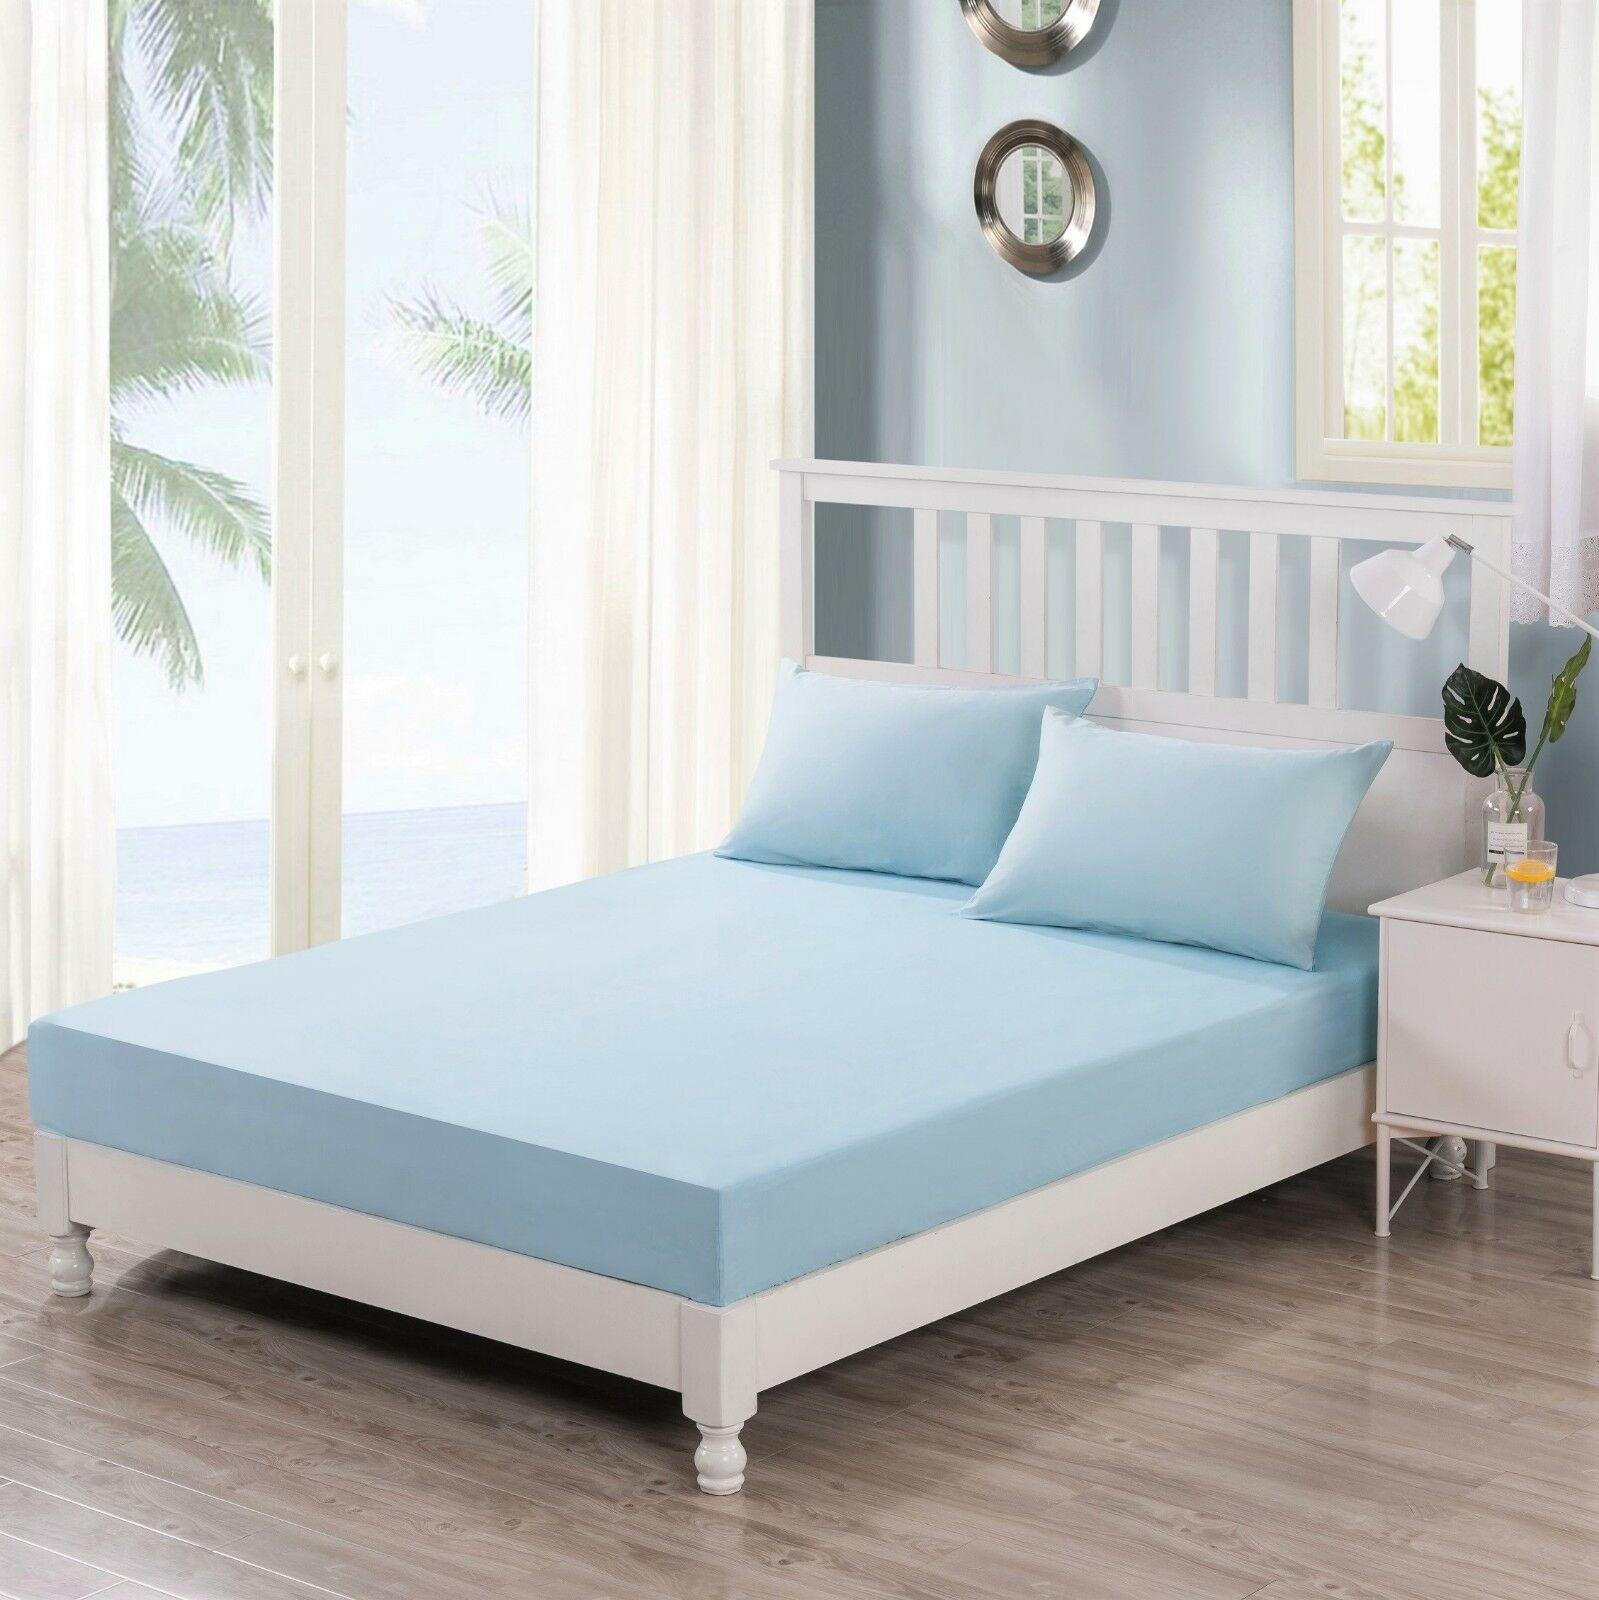 DaDa Bedding SeaFoam Pastel Baby Blau 100% Cotton Fitted Sheet & Pillow Case Set